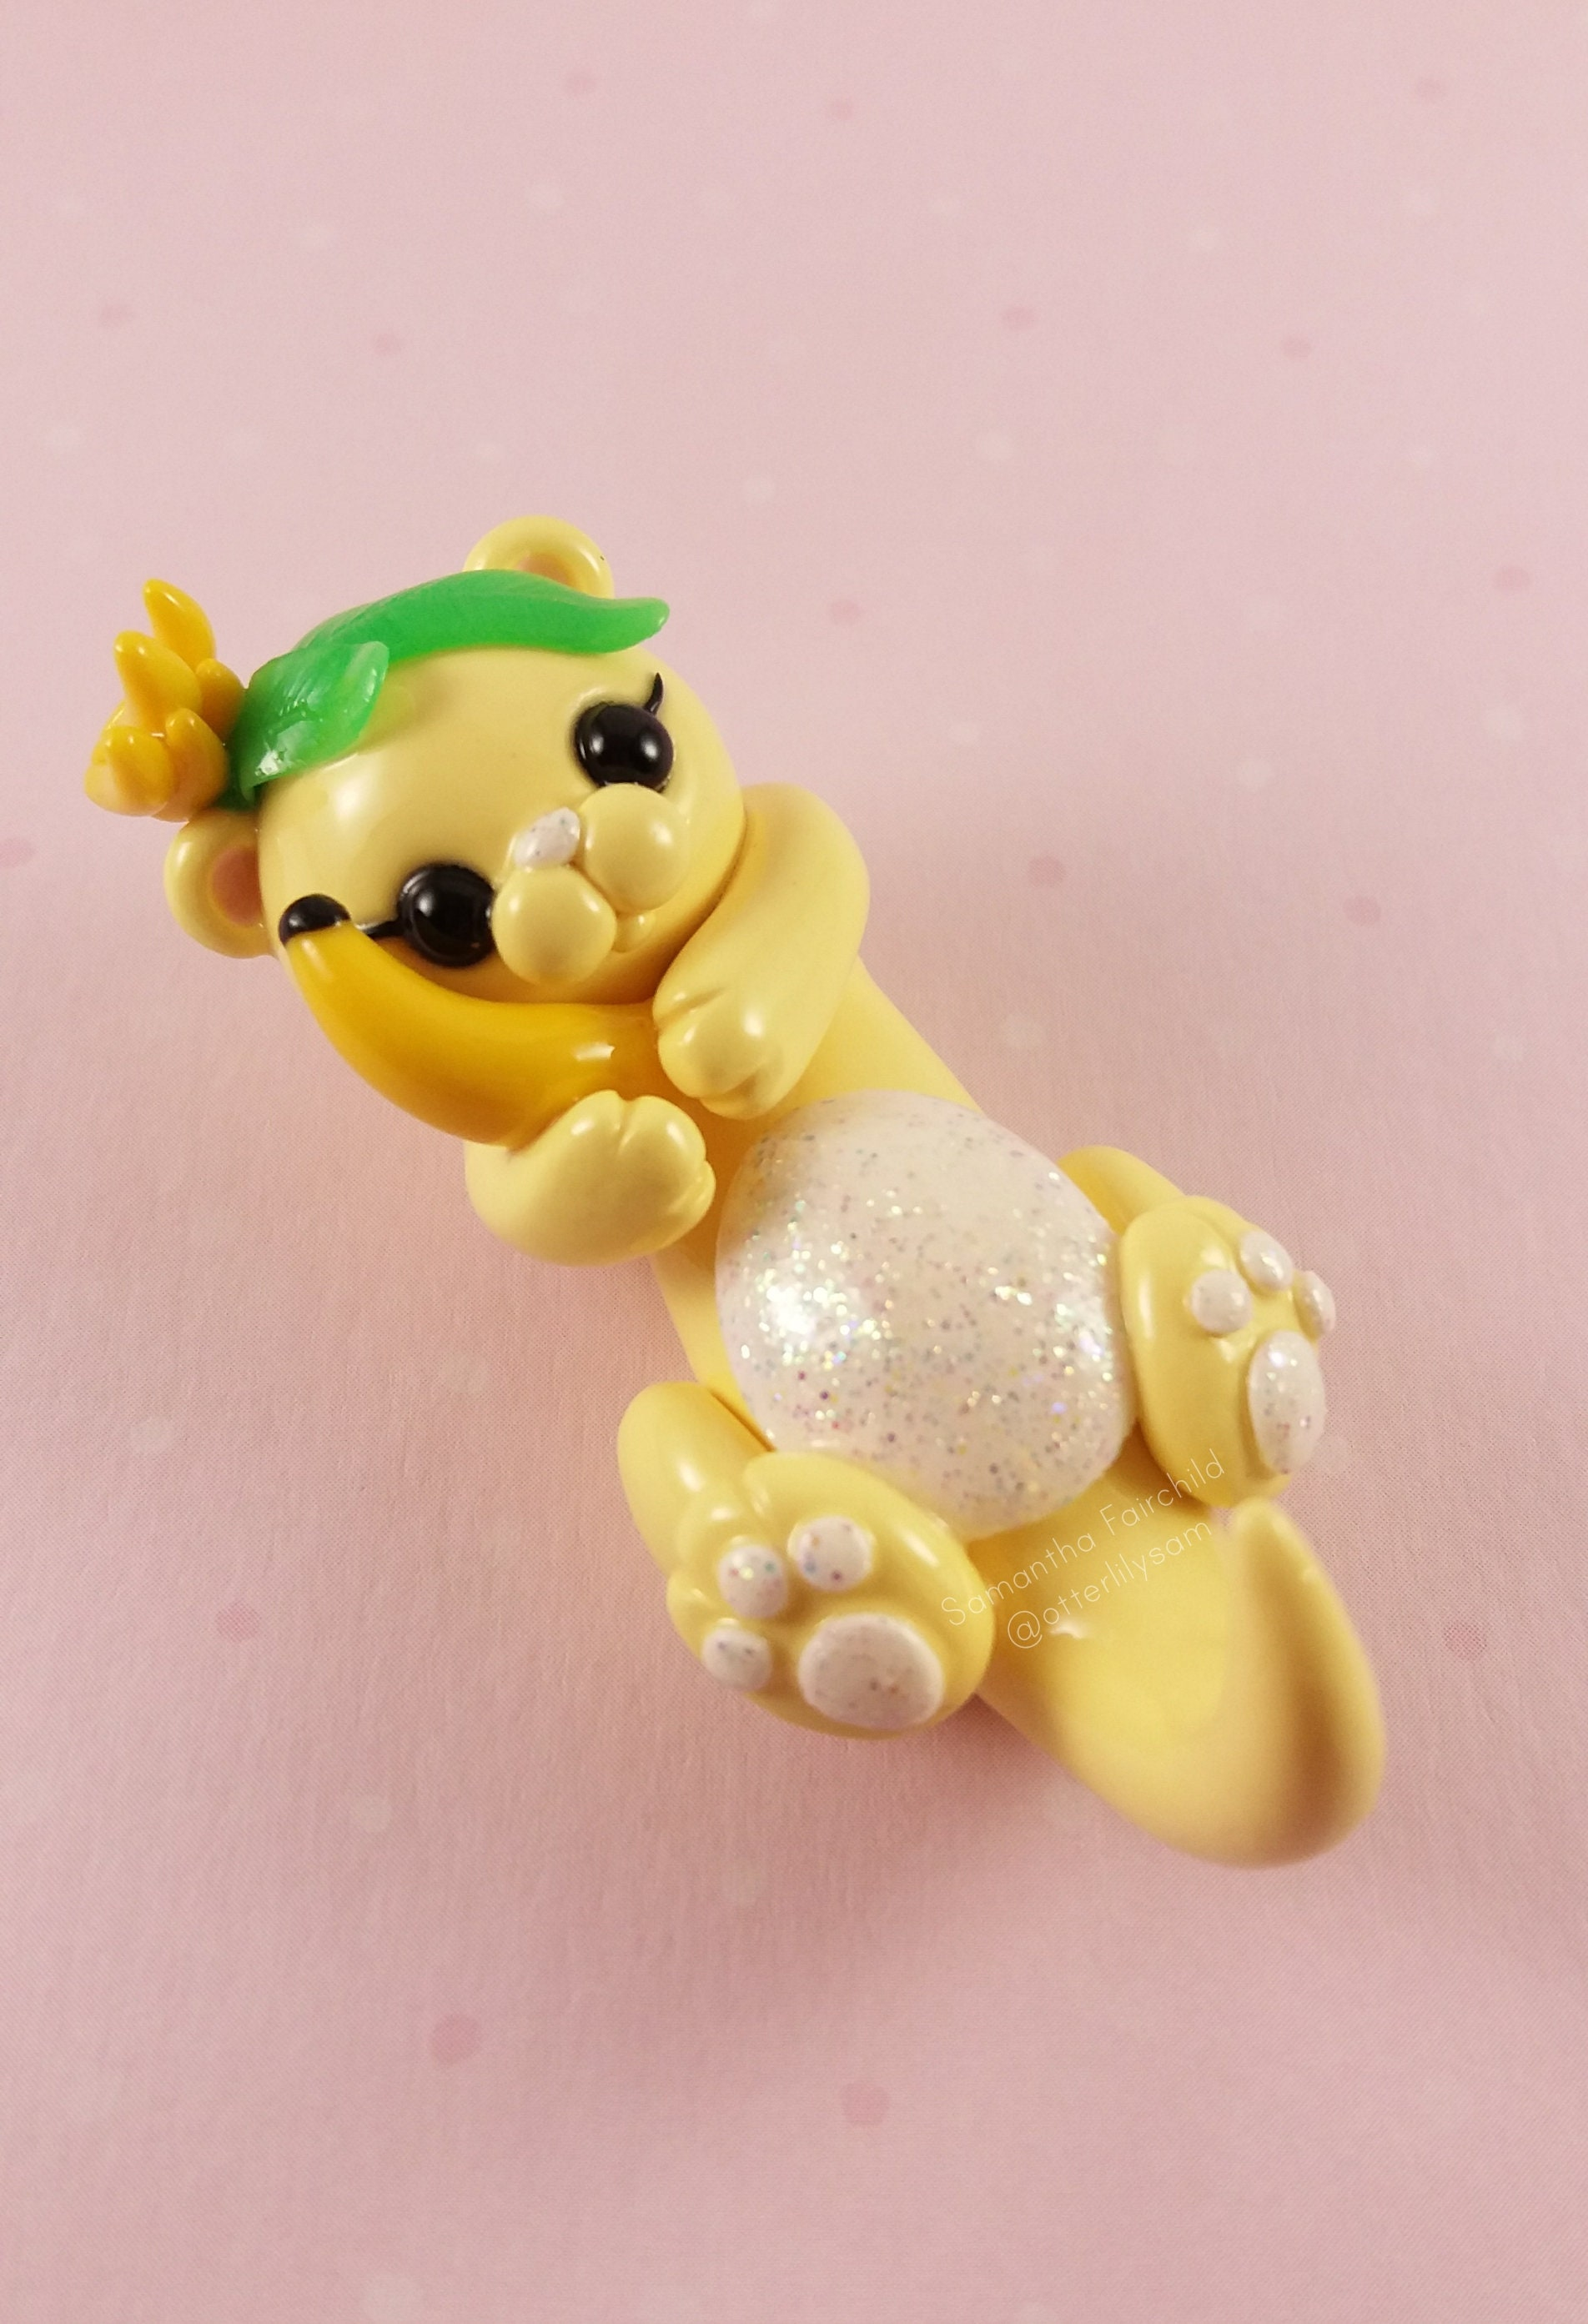 Image of: Miniature 50 Etsy Yellow Banana Otter Figurine Polymer Clay Figurine Animal Etsy